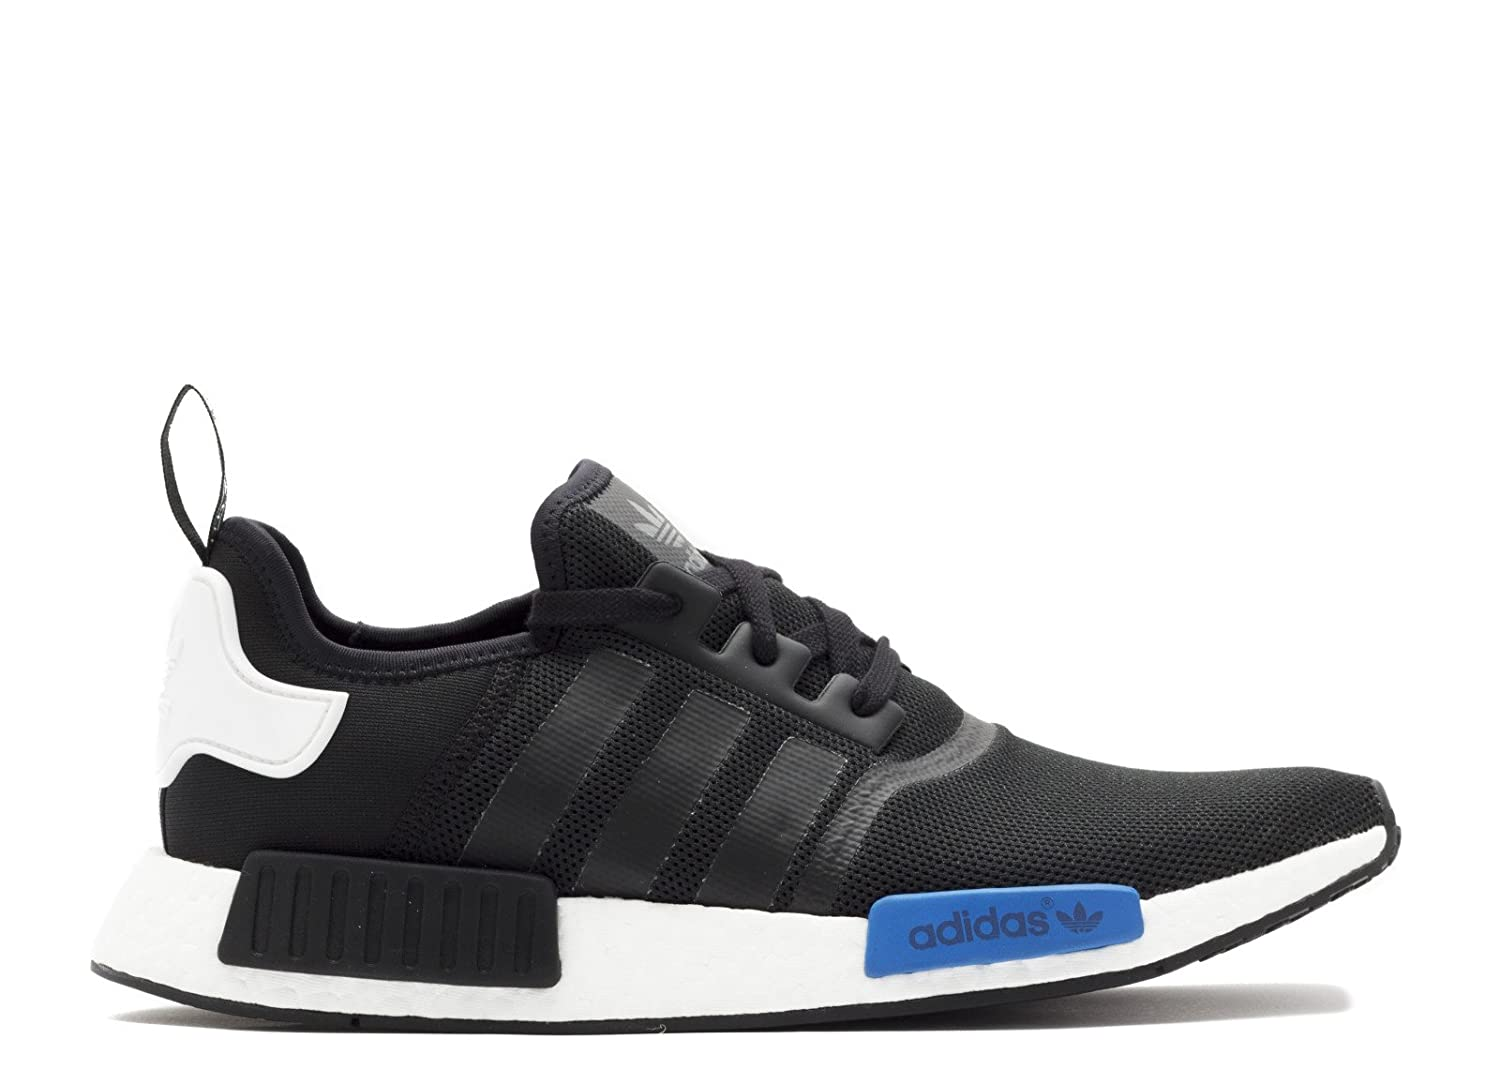 6580e9b5f6a3c adidas NMD Runner - S79162 - Size 12 -  Amazon.co.uk  Shoes   Bags